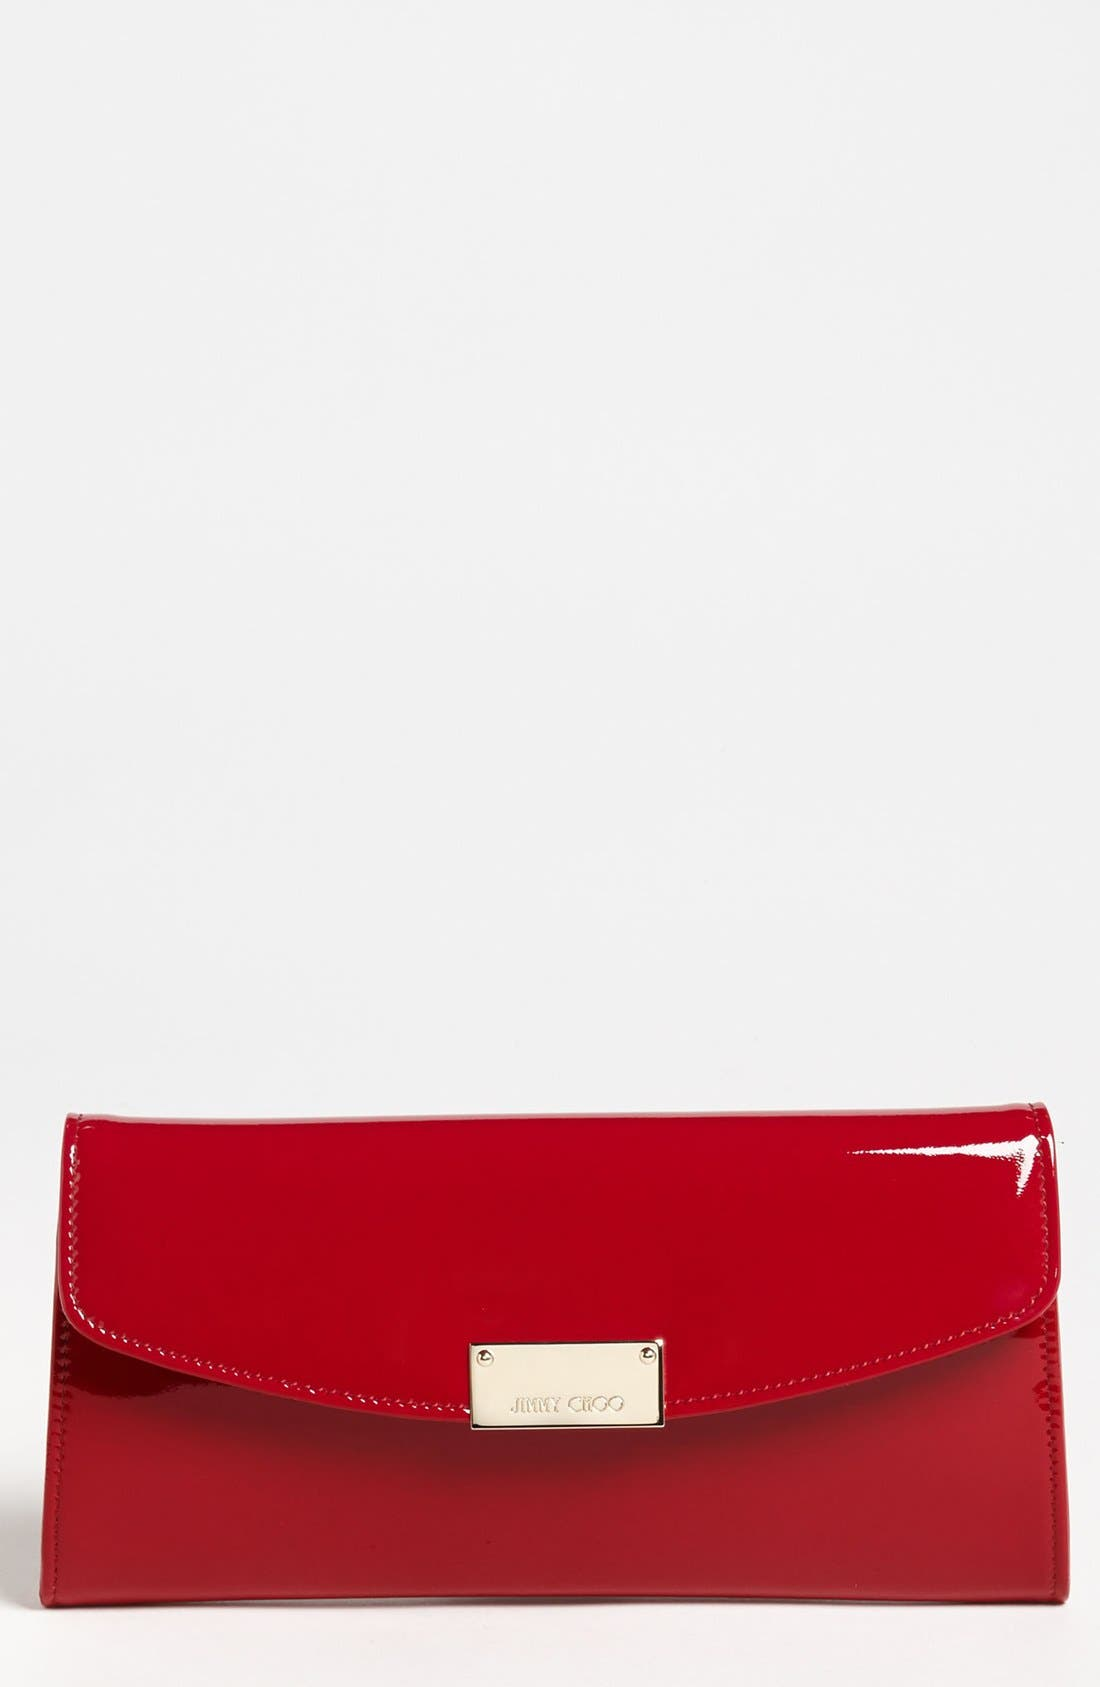 Main Image - Jimmy Choo 'Riane' Patent Leather Clutch